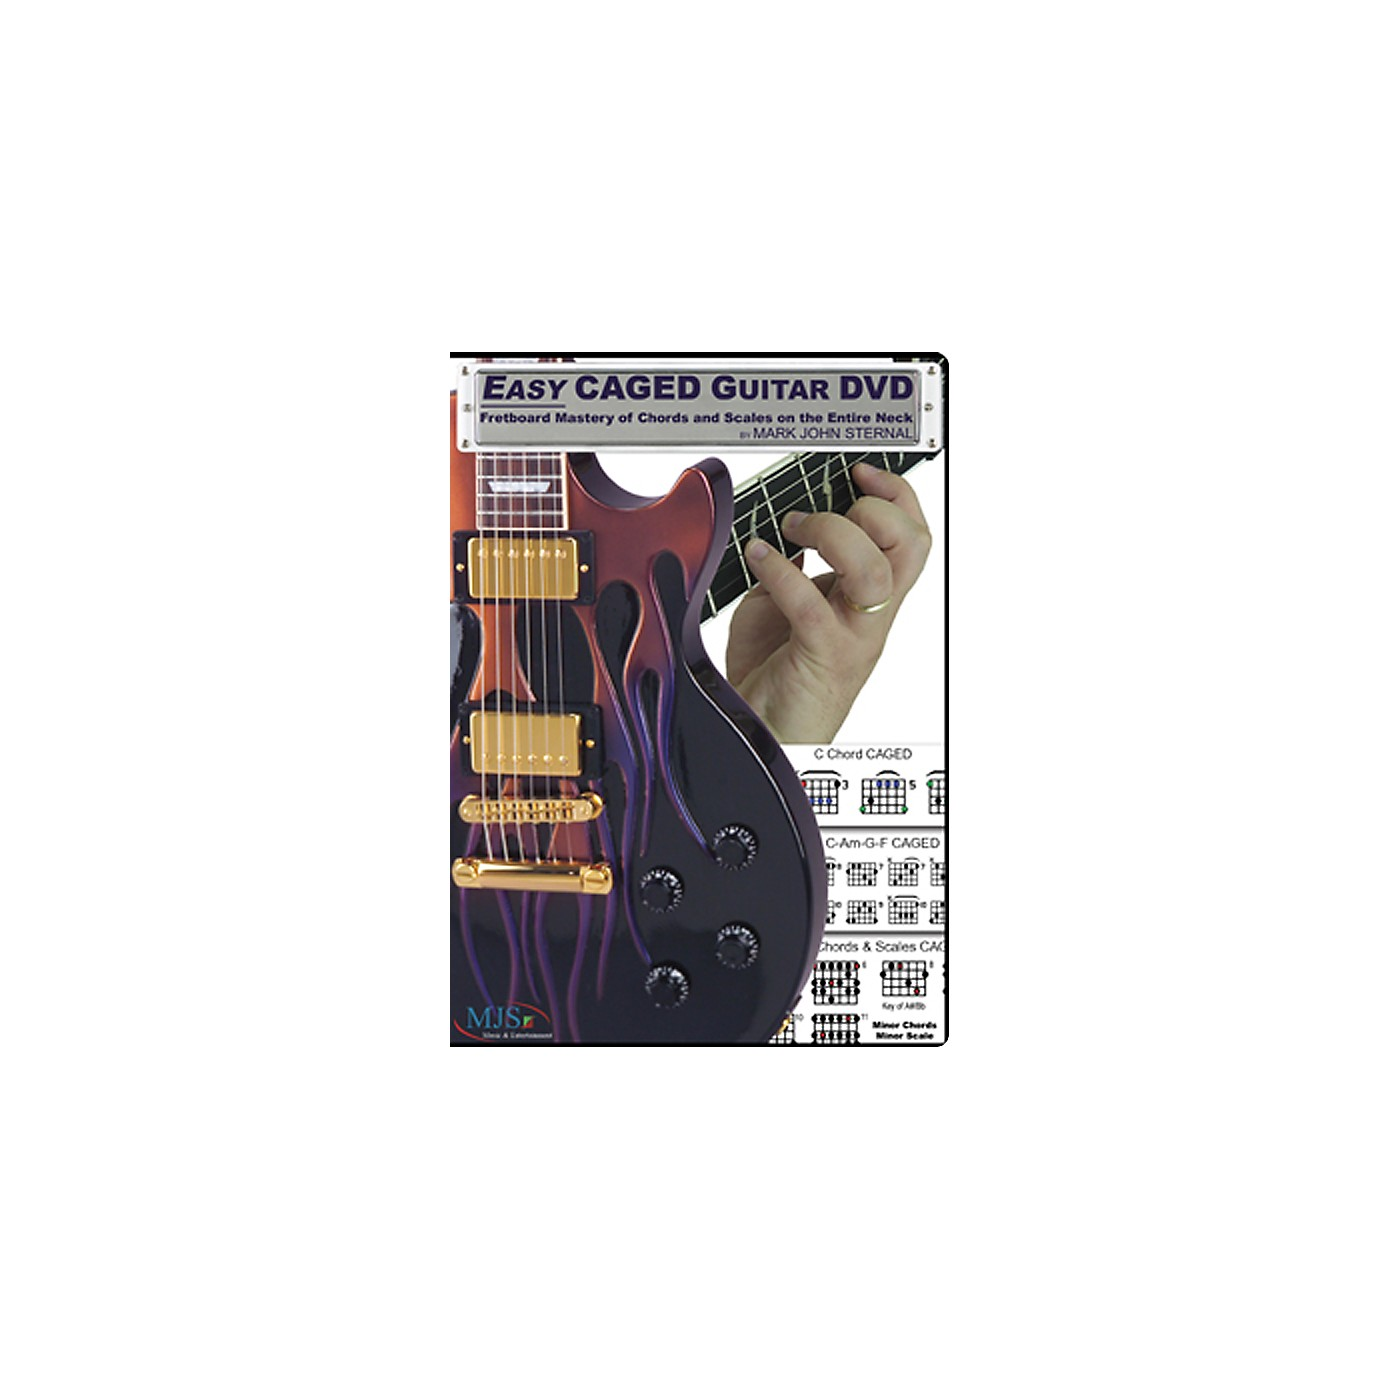 MJS Music Publications Easy CAGED Guitar DVD: Fretboard Mastery of Chords and Scales on the Entire Neck thumbnail